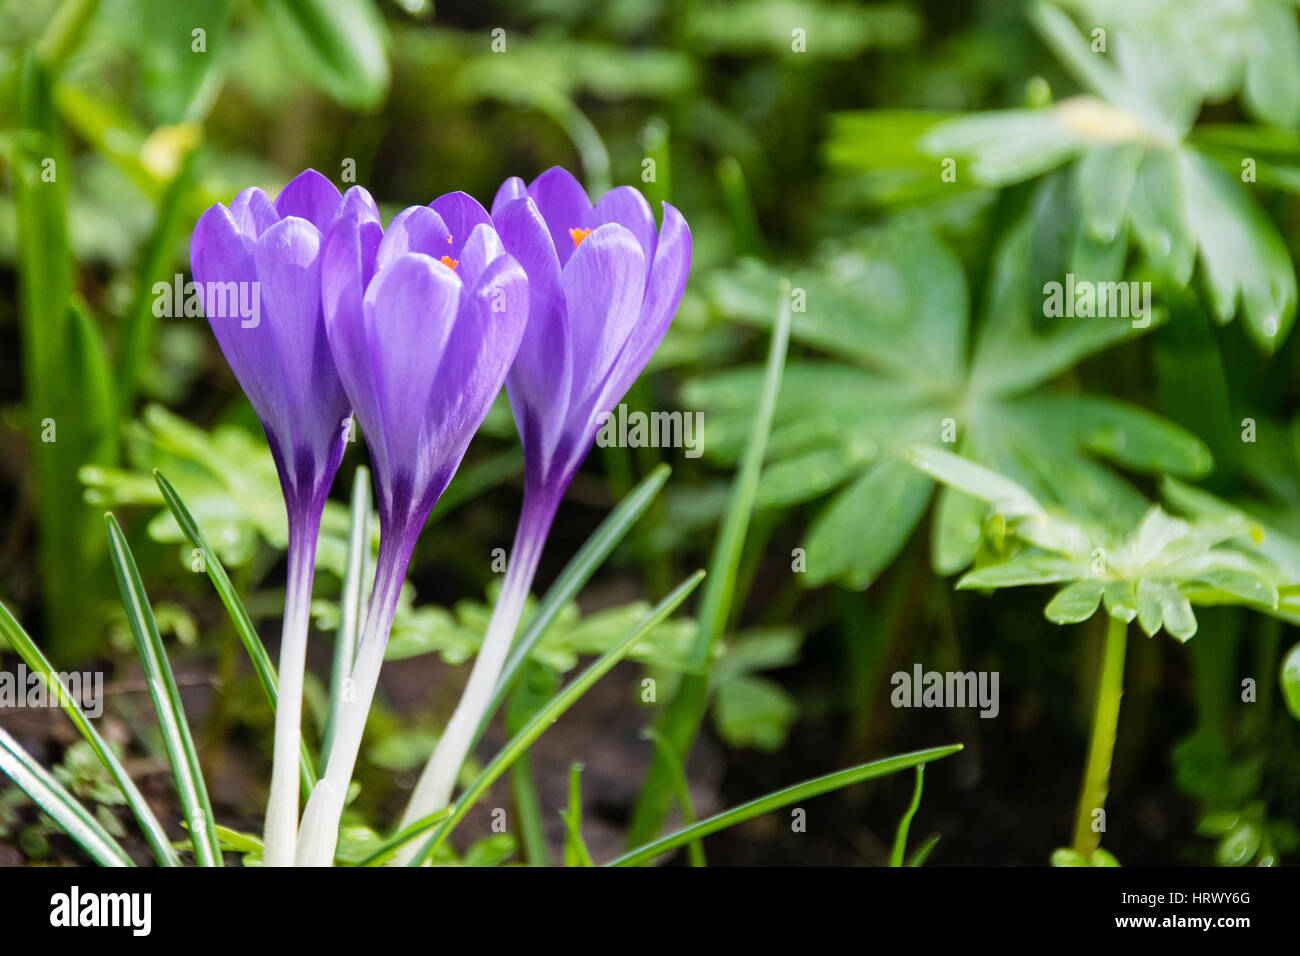 Early spring flowers for bees choice image flower decoration ideas early spring flowers for bees choice image flower decoration ideas hertford uk 4th march 2017 bees mightylinksfo